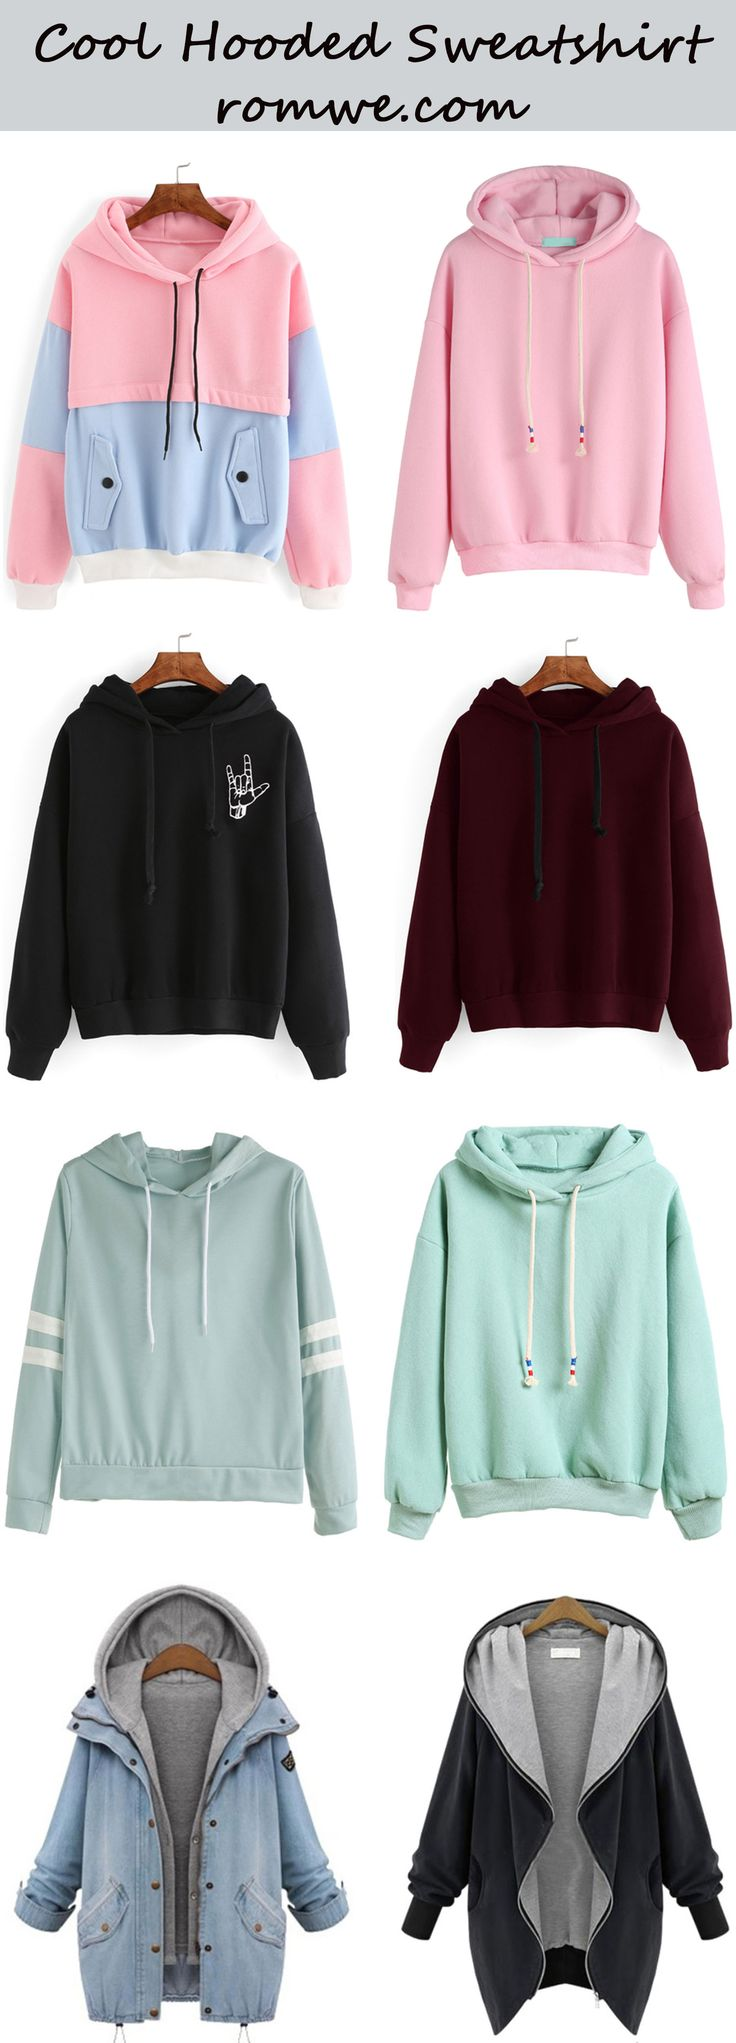 Cool Hooded Sweatshirts from romwe.com